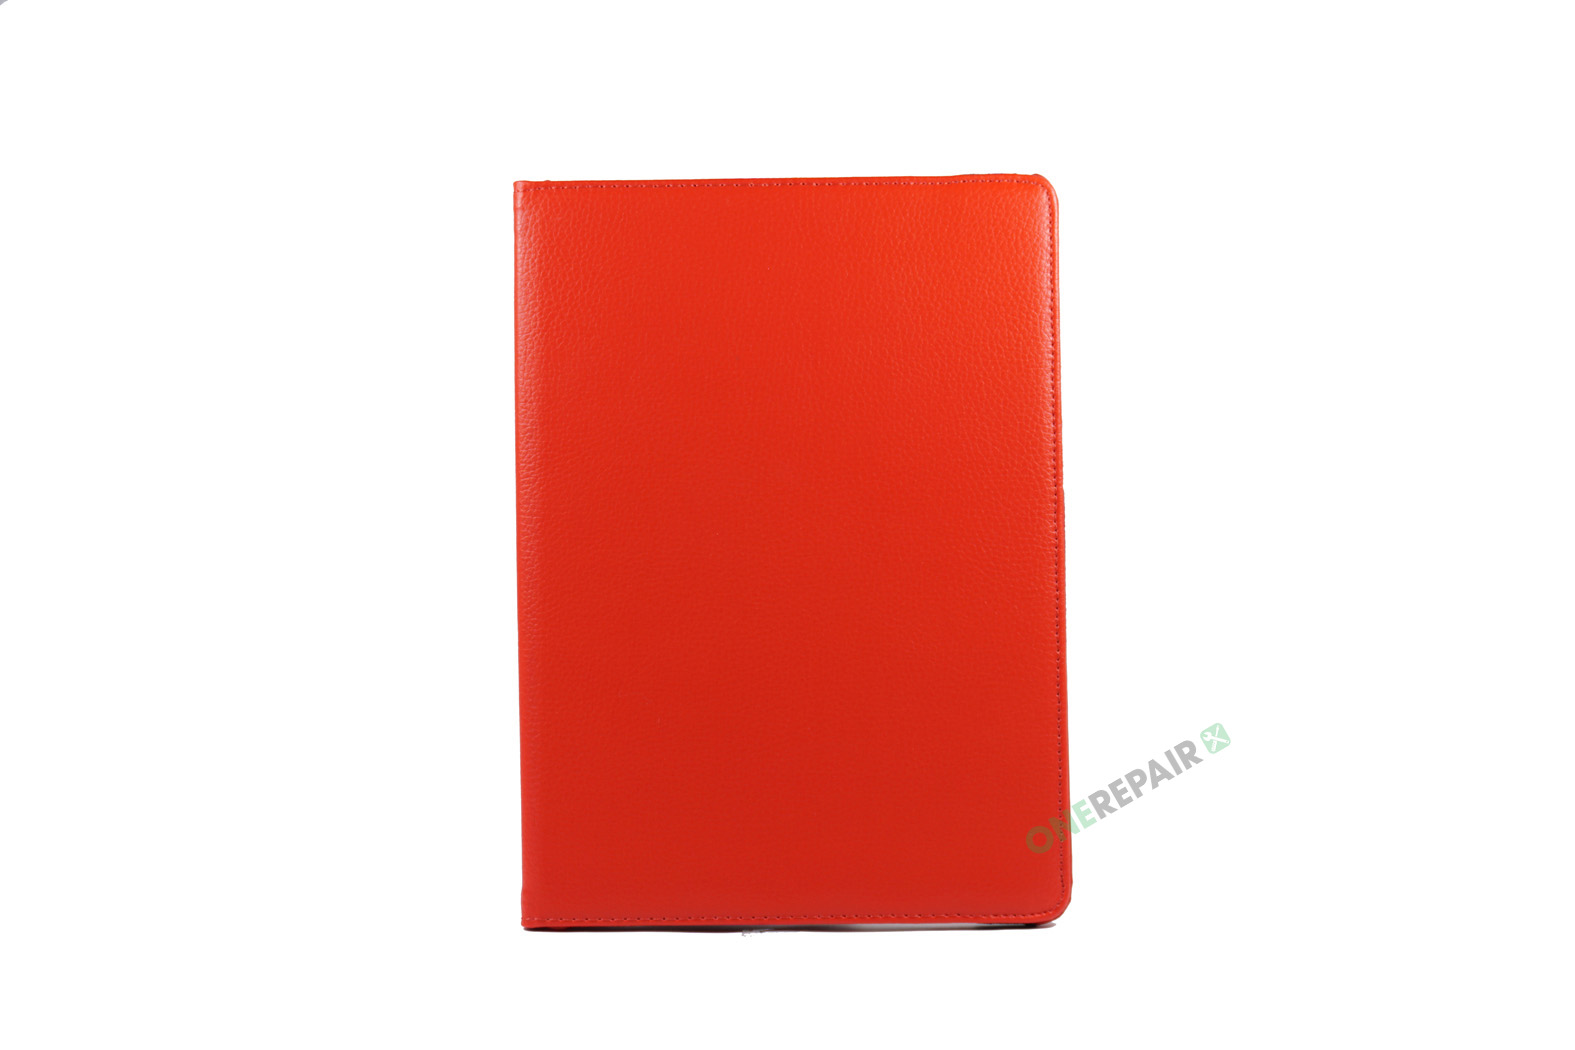 351053_iPad_Air2_2_A1566_A1567_Flipcover_Cover_Roed_OneRepair_00002